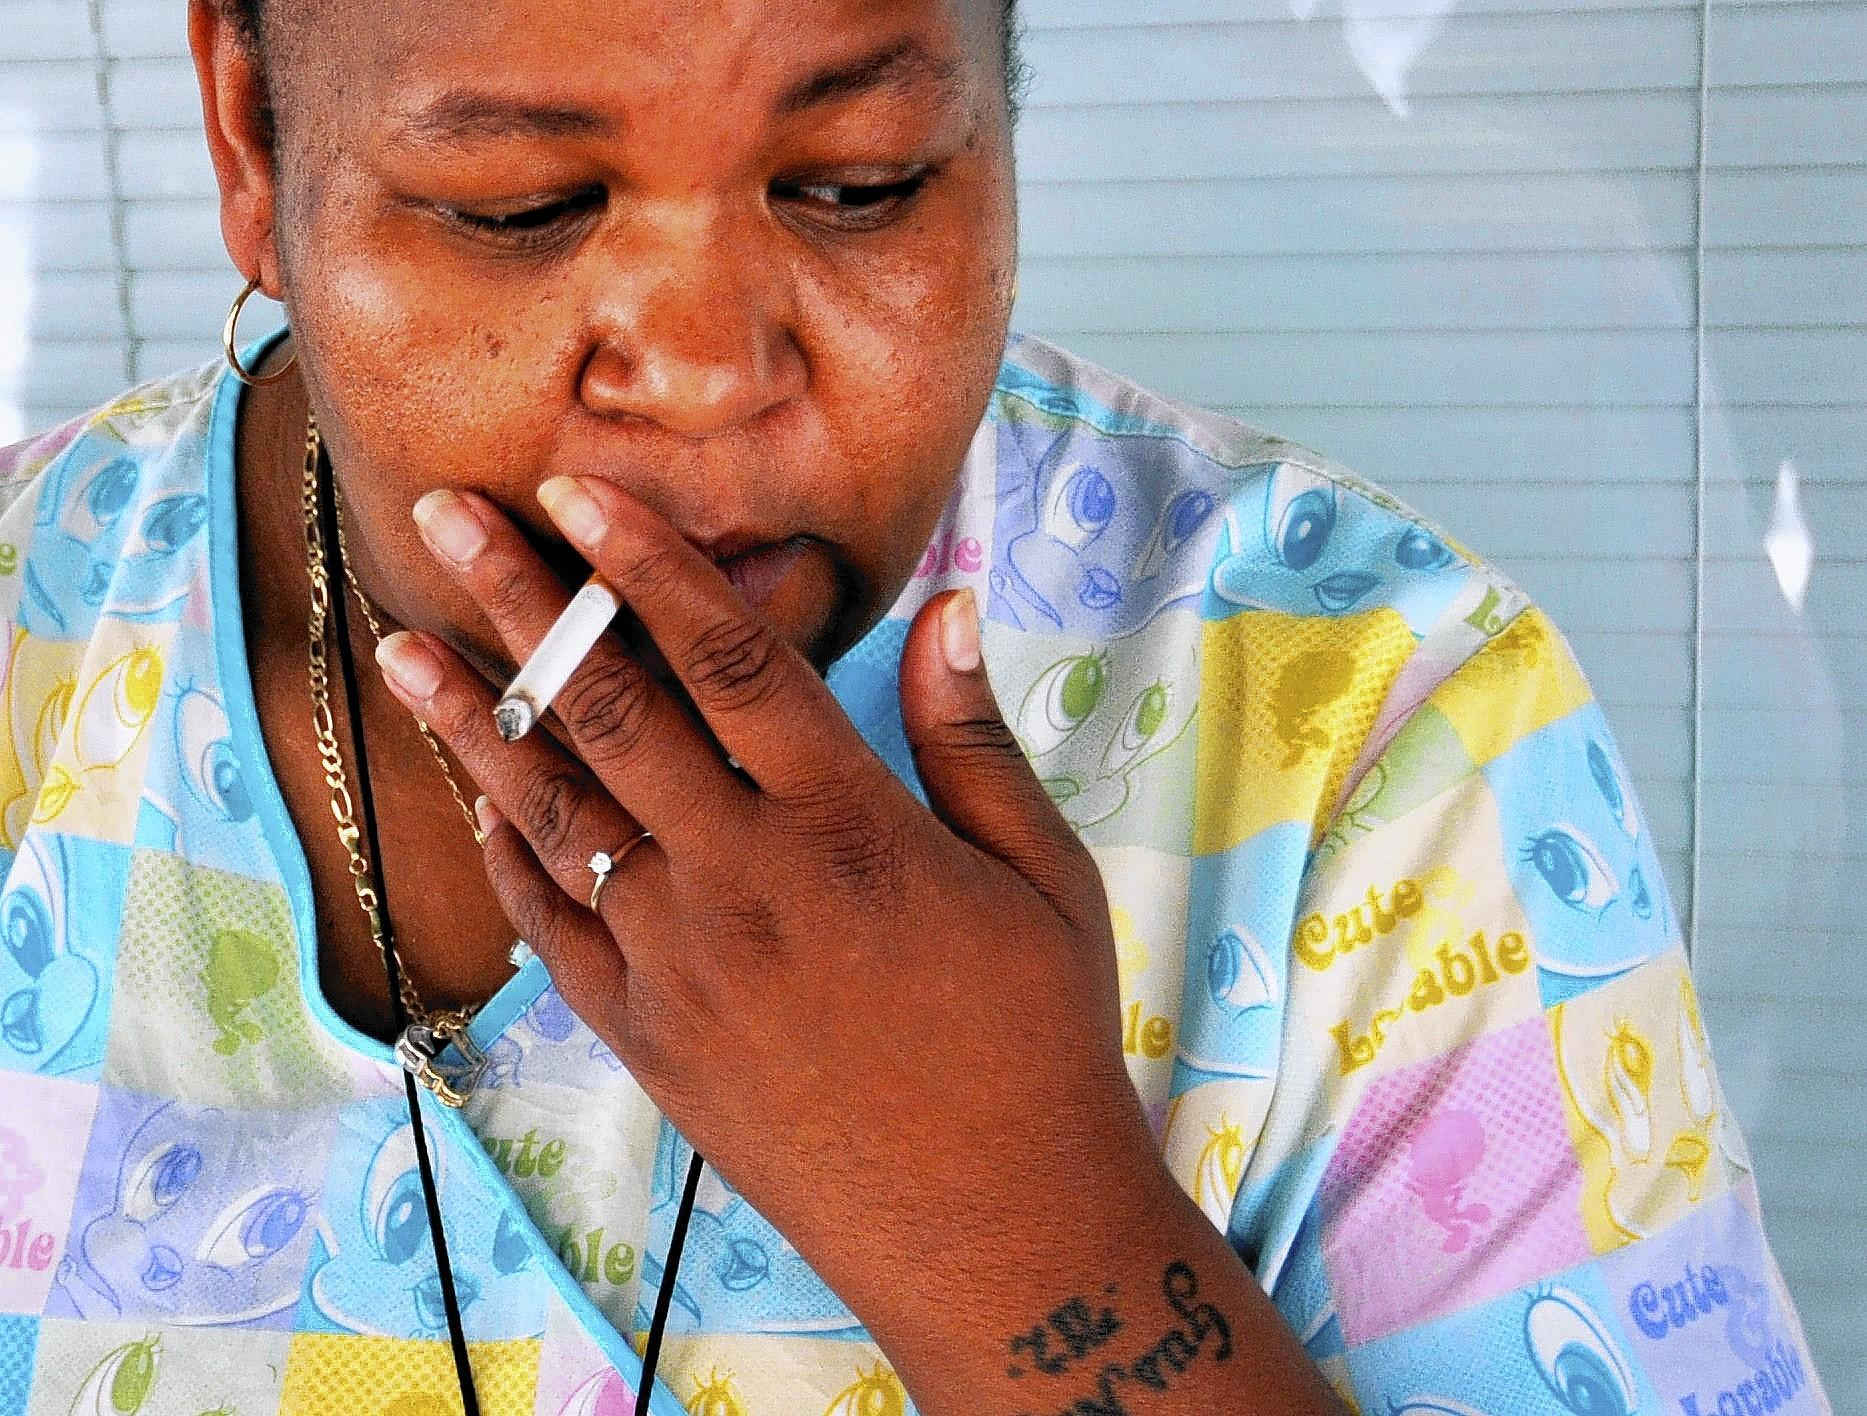 Nickia Trafton, a phlebotomist at Mercy Medical Center in Baltimore, pauses to smoke a cigarette during a break.